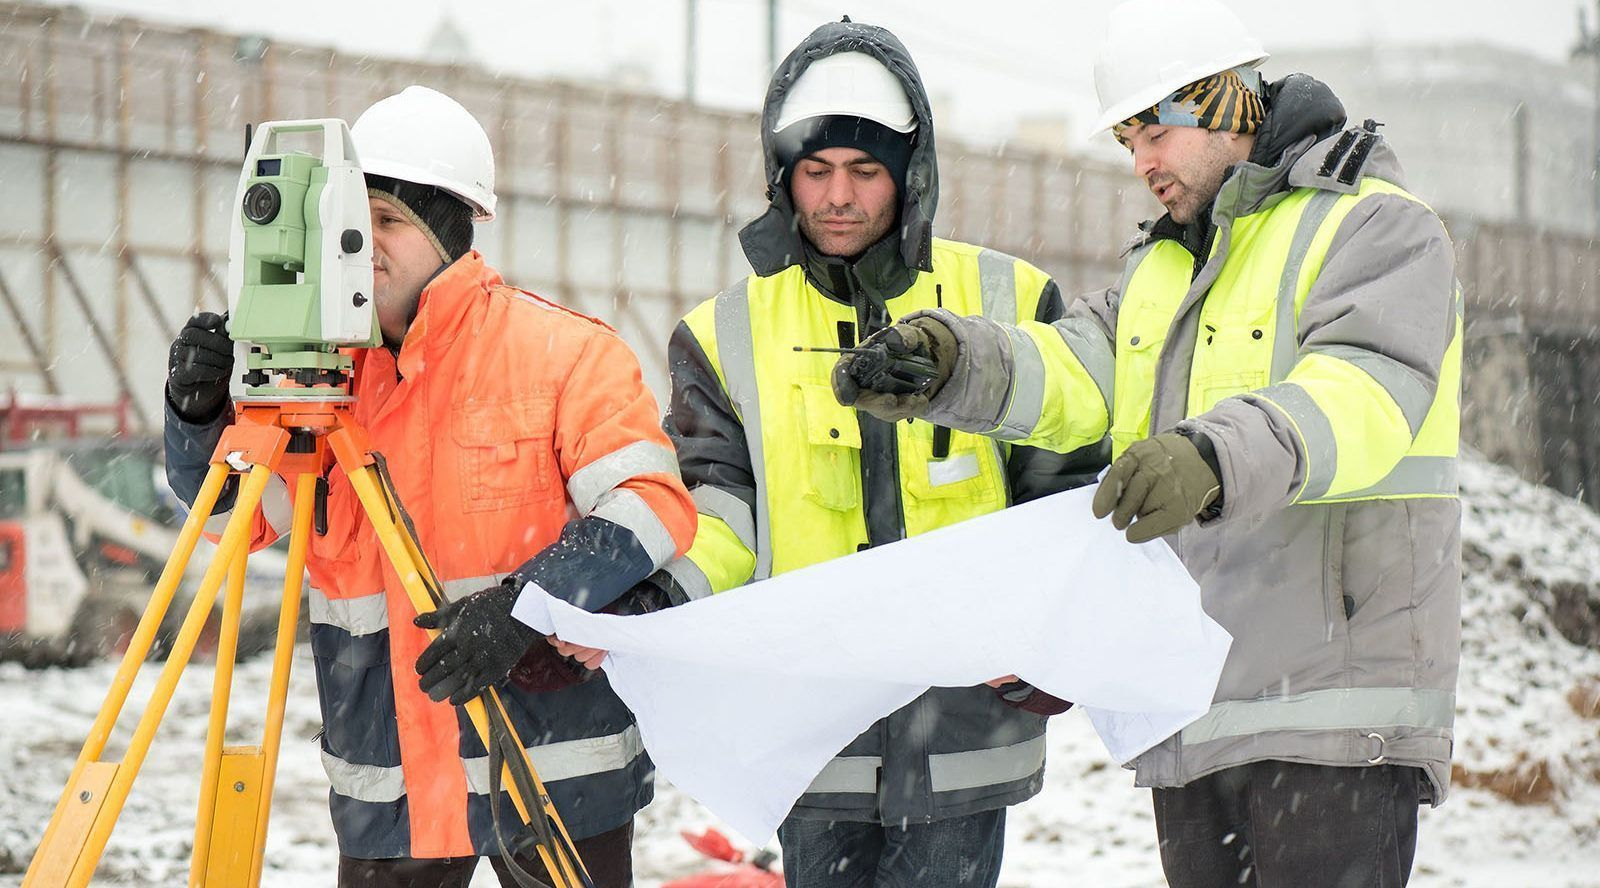 Construction Safety In The Winter - Tilt Wall Ontario